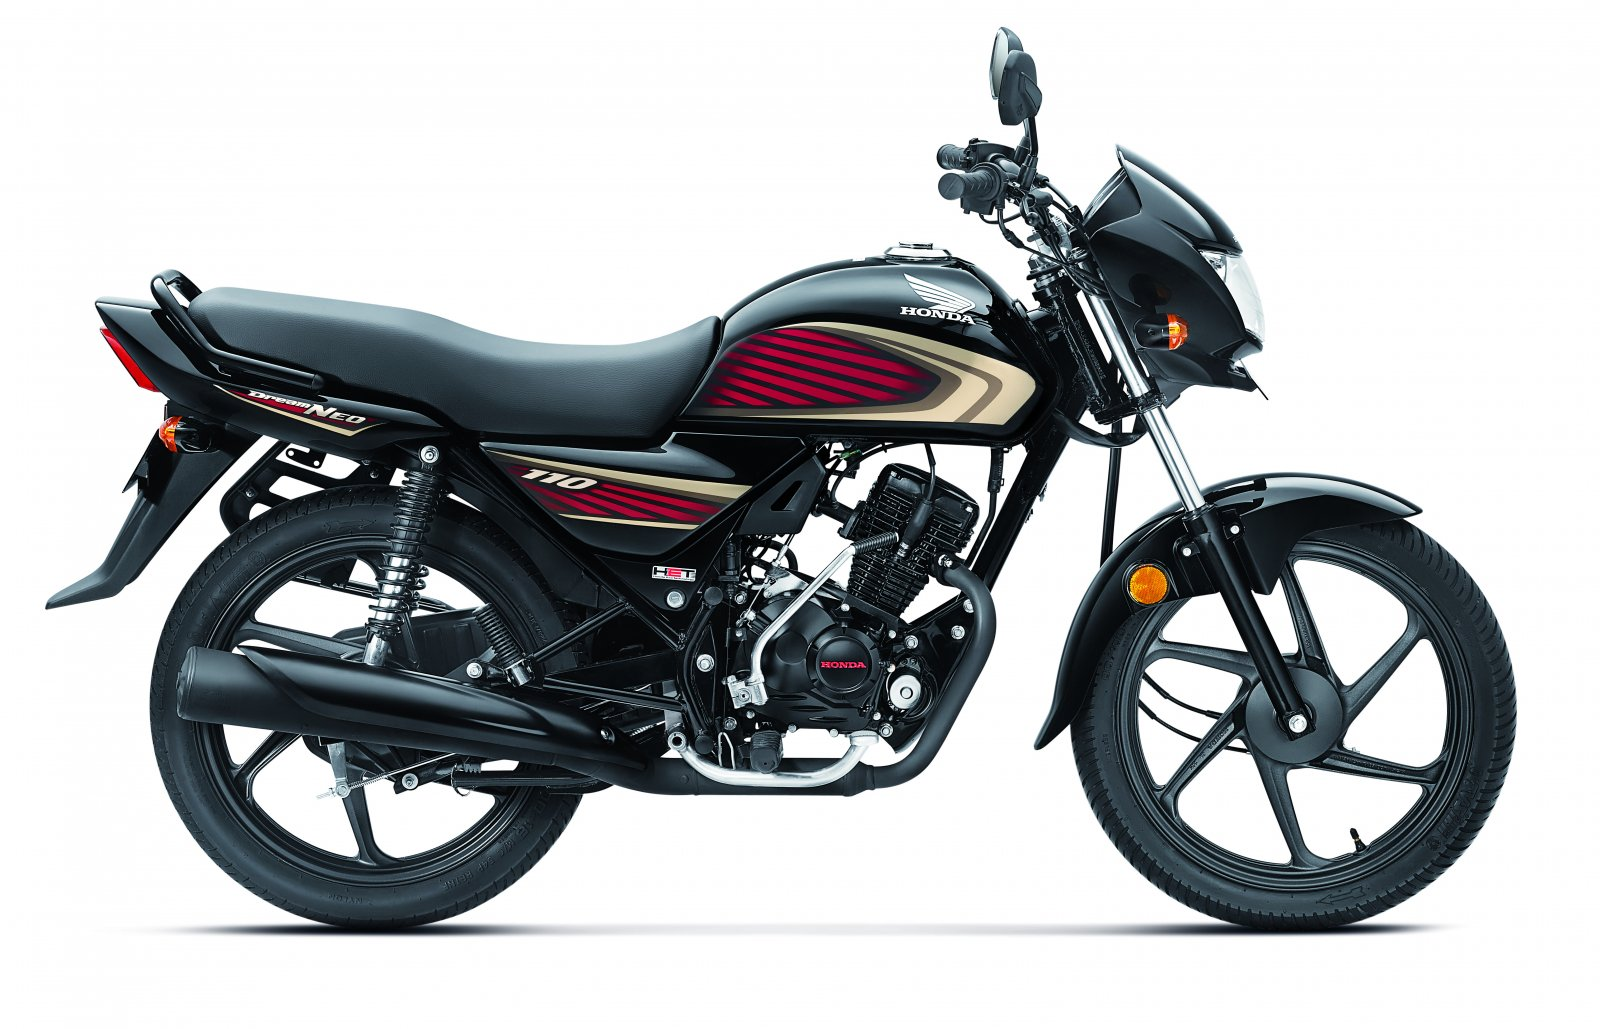 2016 Honda Dream Neo To Hit Indian Market Next Month